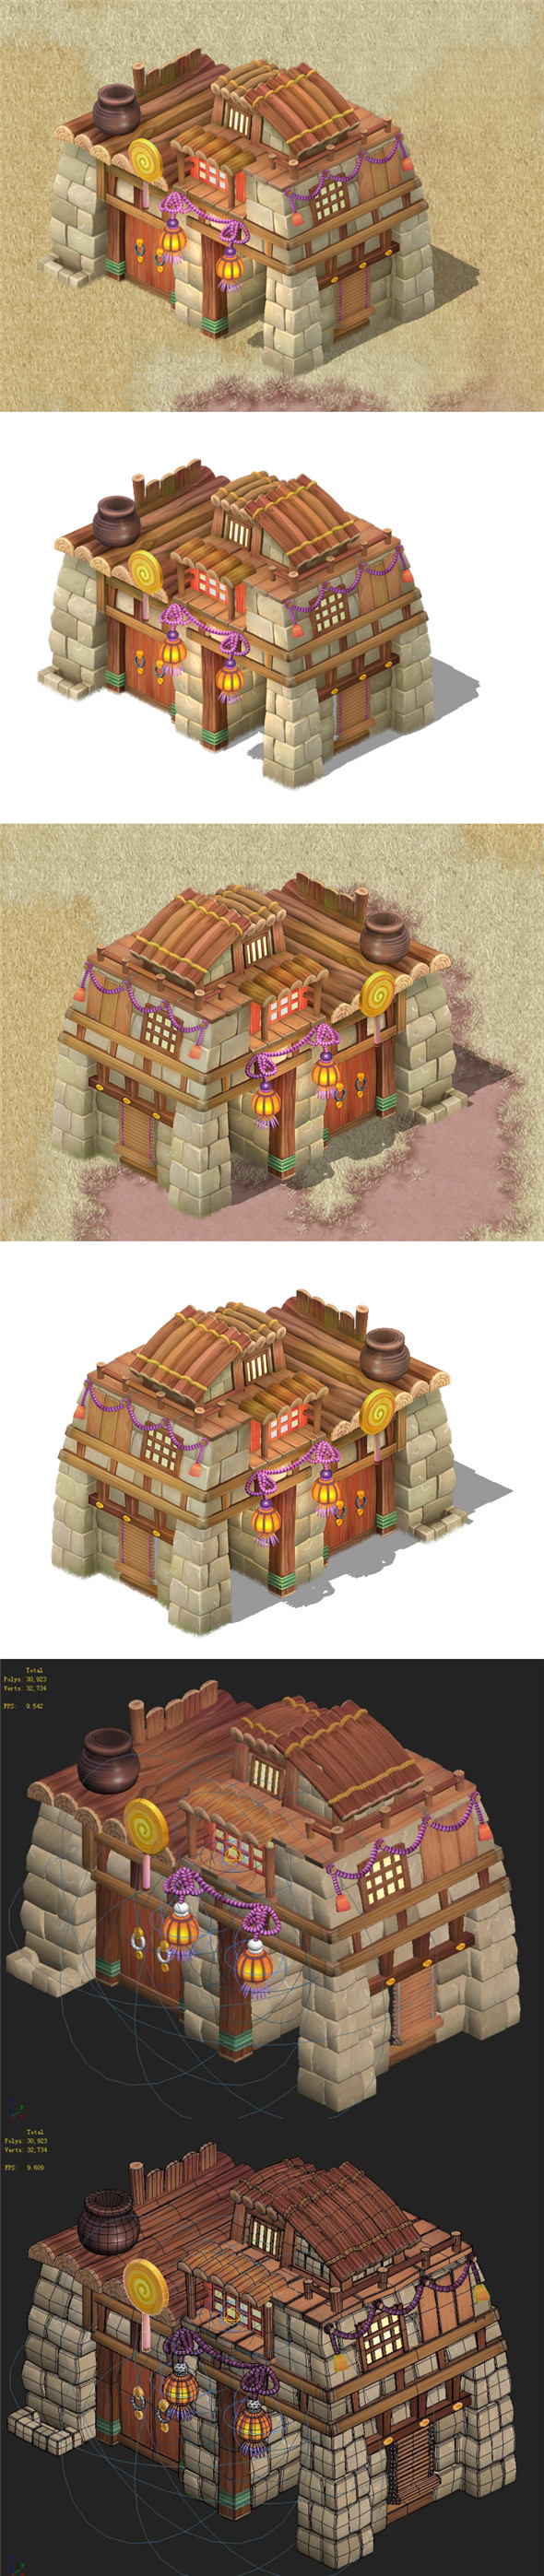 Cartoon version - House 0303 - 3DOcean Item for Sale